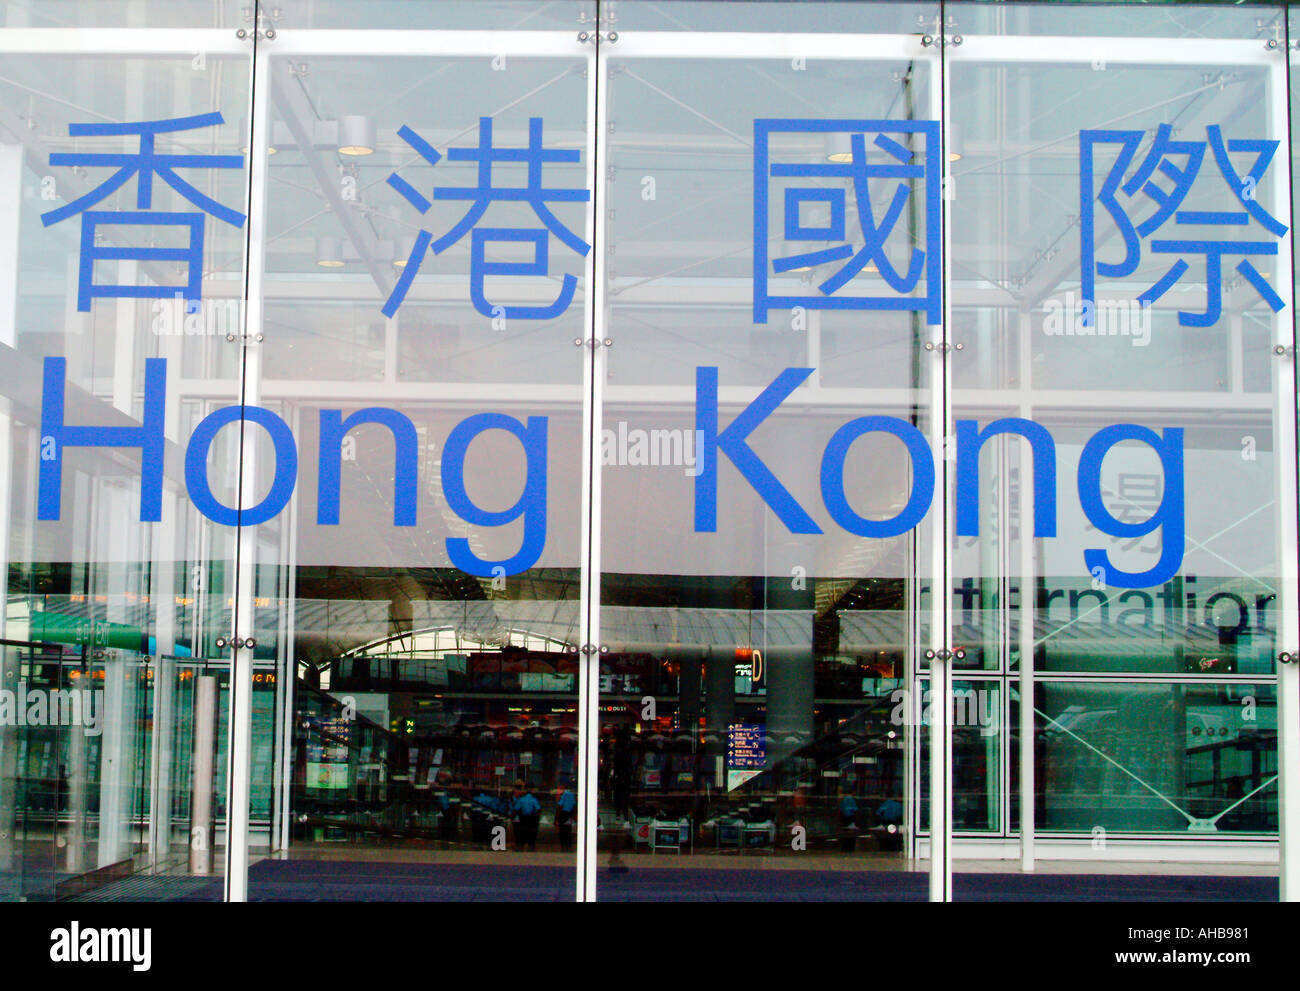 hong kong, sign, airport, hong kong, - Stock Image